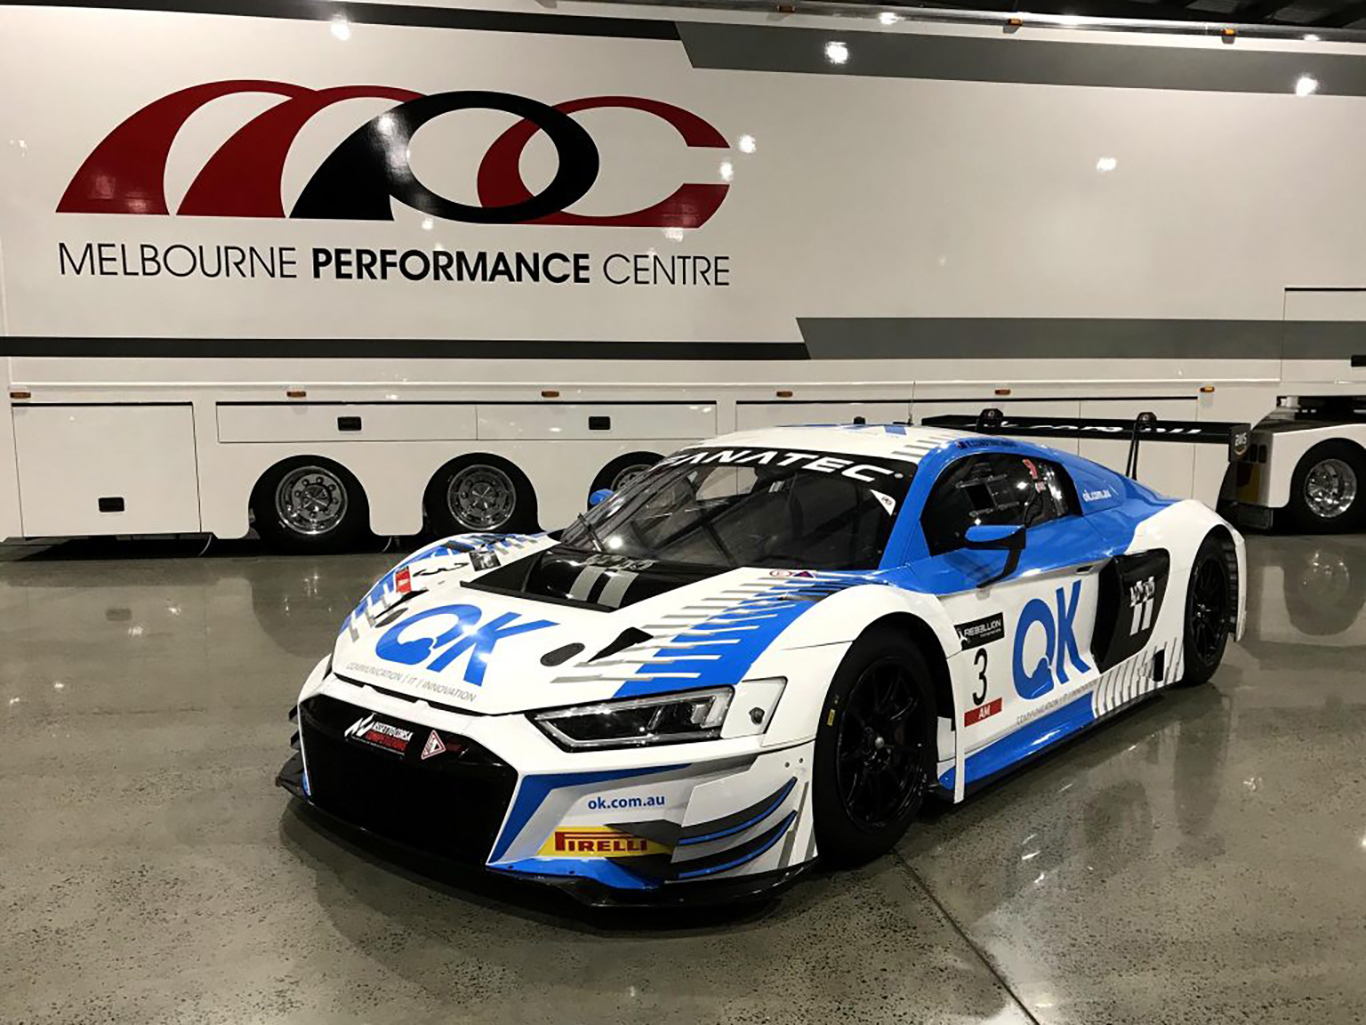 Melbourne Performance Centre adds two additional Audi R8 LMS Evos for GTWC Australia